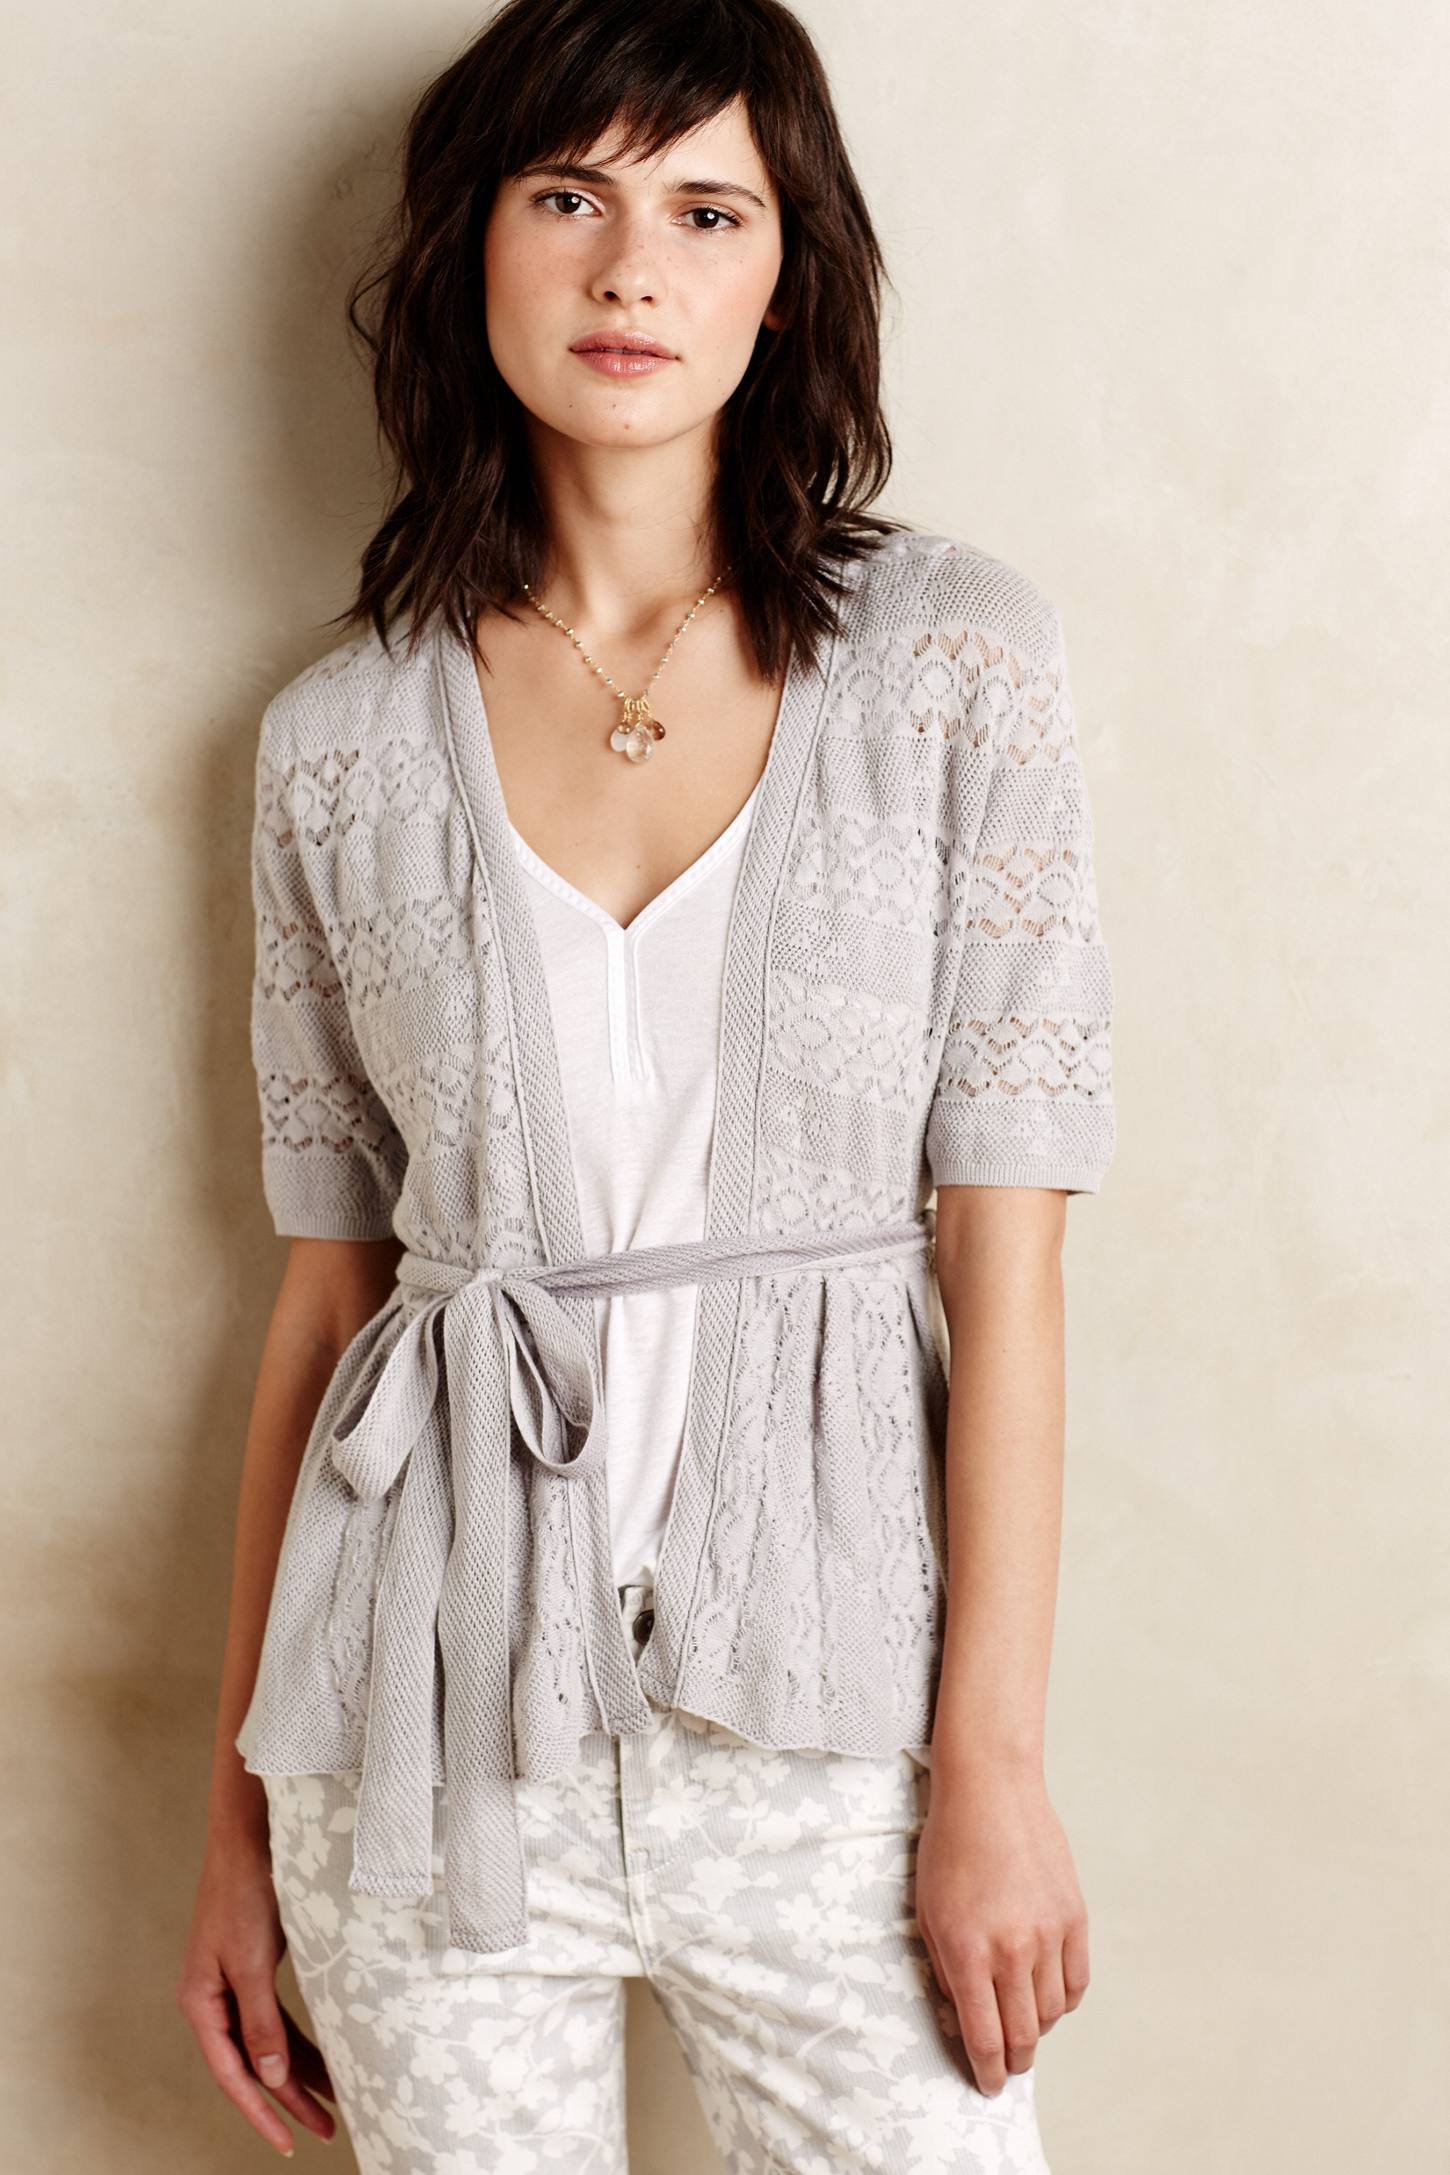 Knitted & knotted Lace Stitch Cardigan in Gray | Lyst